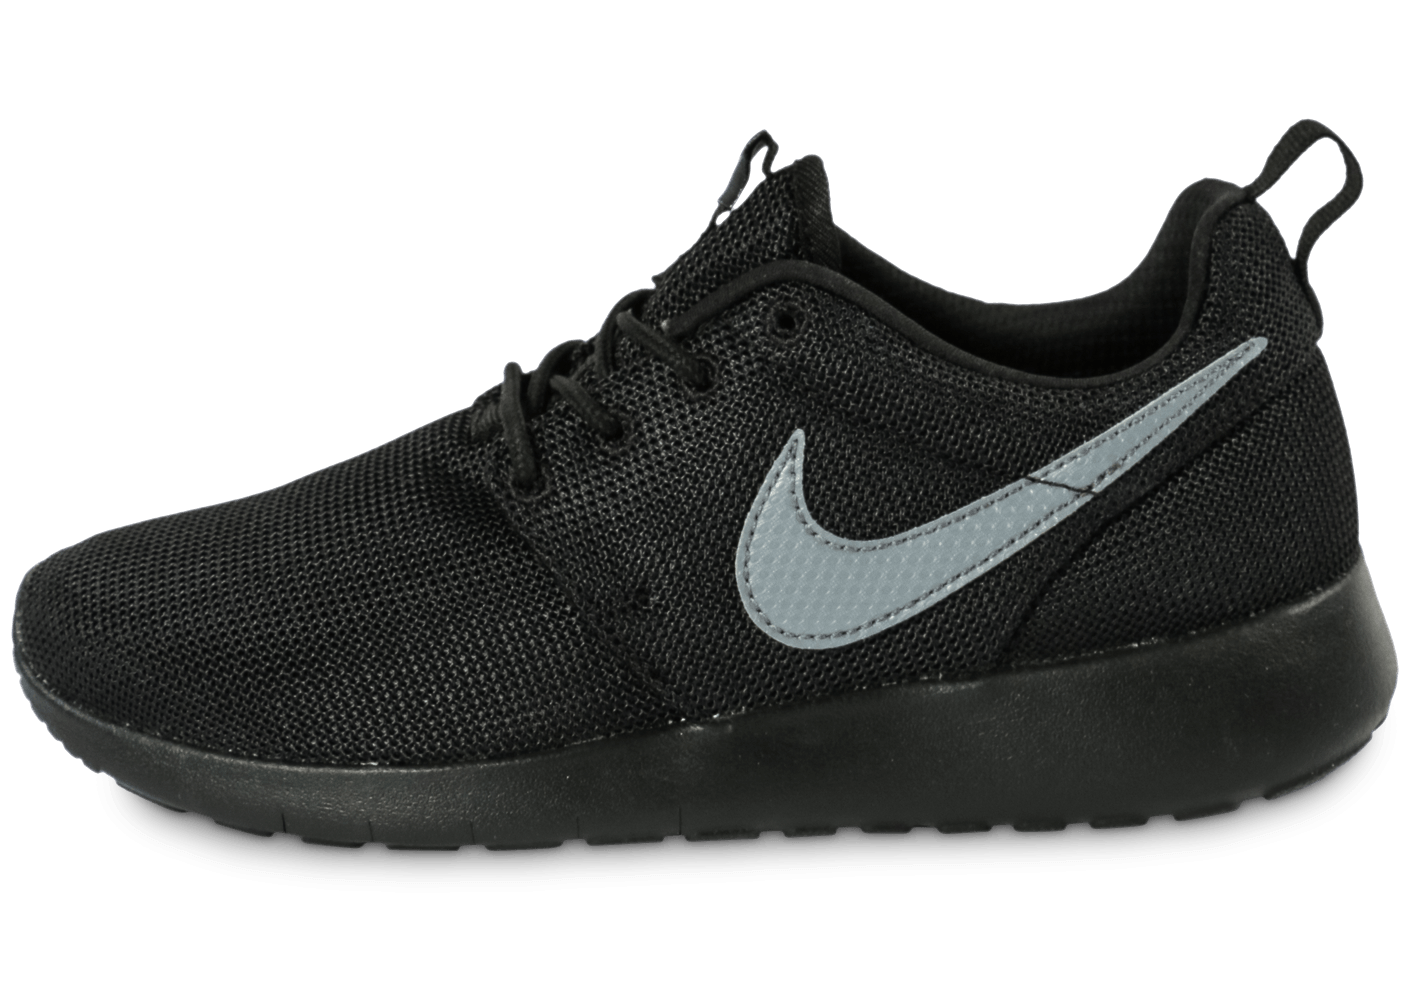 outlet store 878d1 7100c ... new zealand chaussures one roshe junior chausport grise noire  chaussures nike et 7t0qwr05 2b45f 49a55